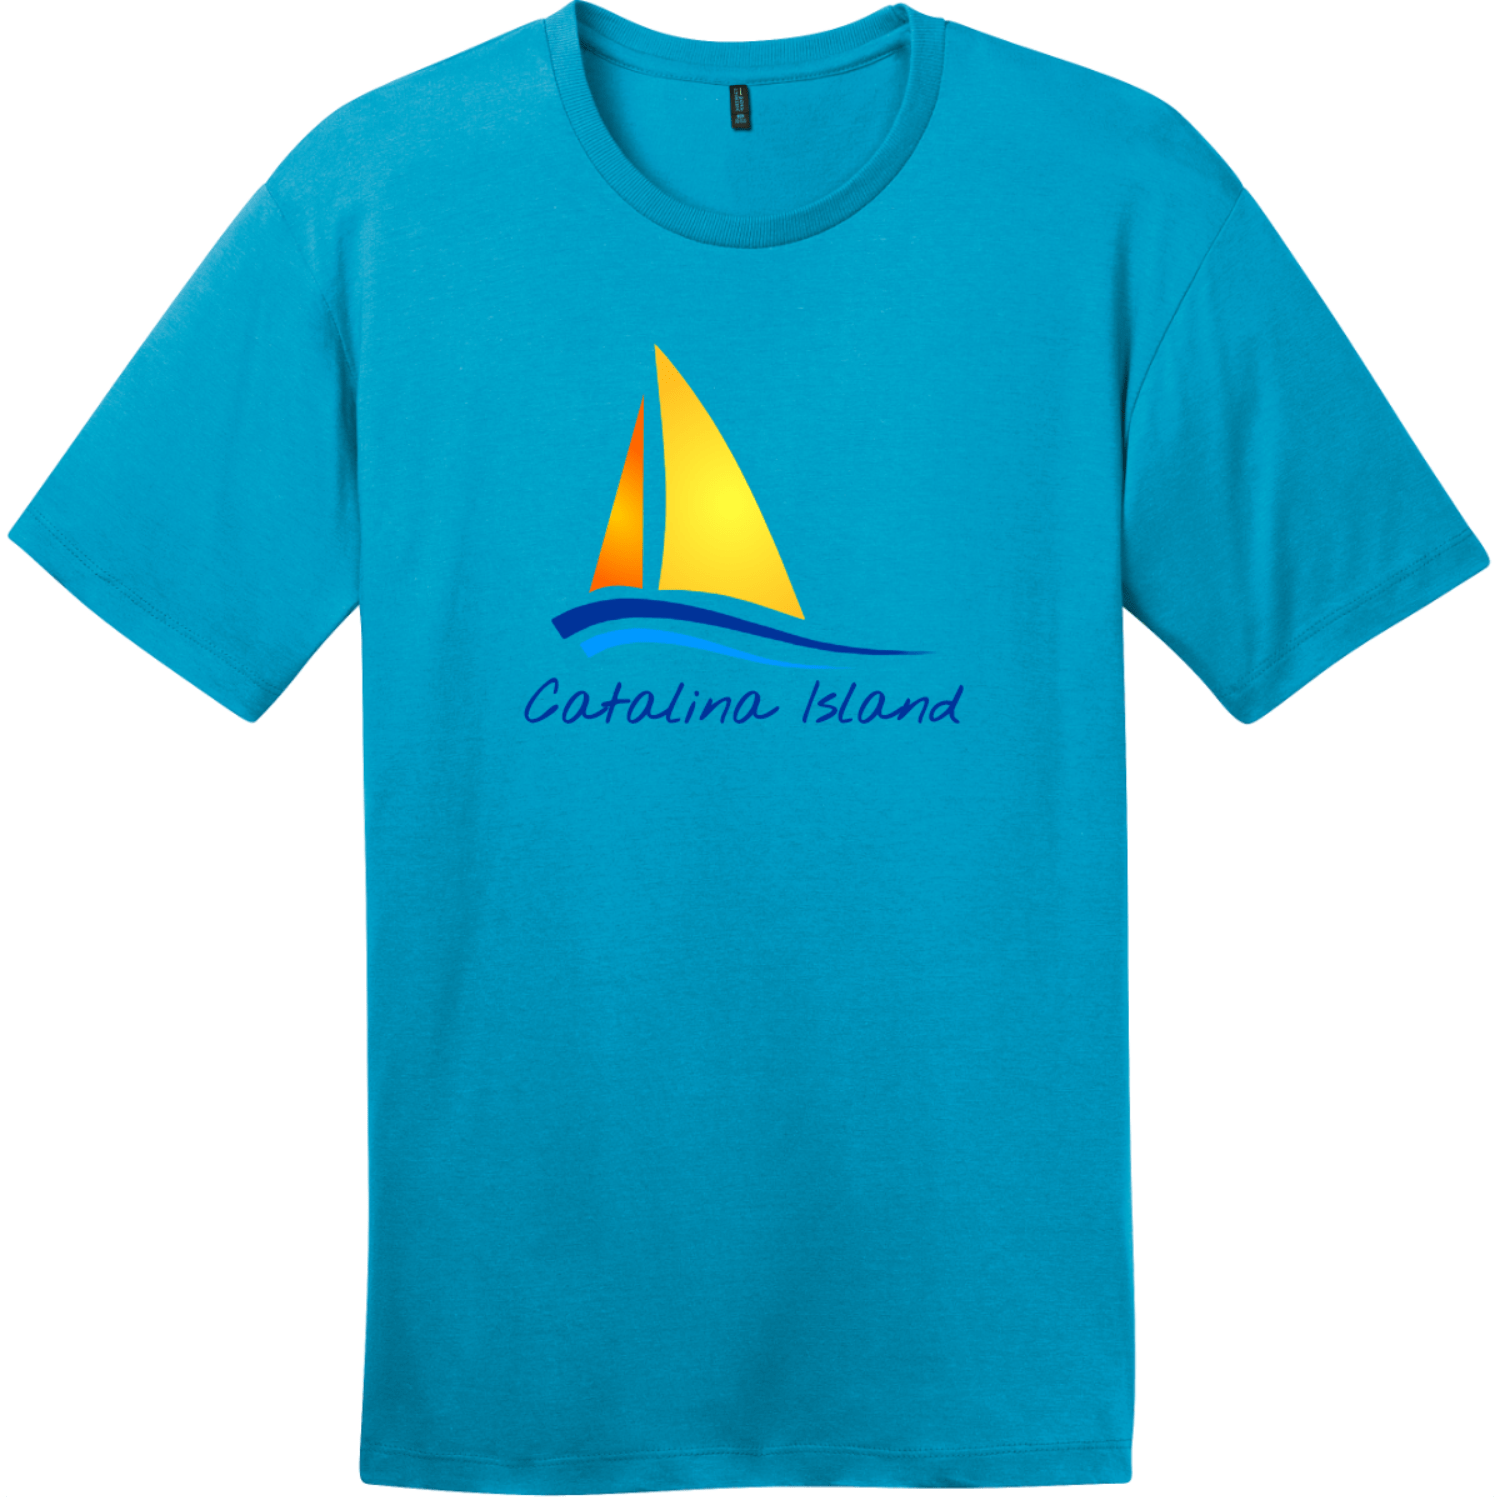 Catalina Island Sailboat T-Shirt Bright Turquoise District Perfect Weight Tee DT104